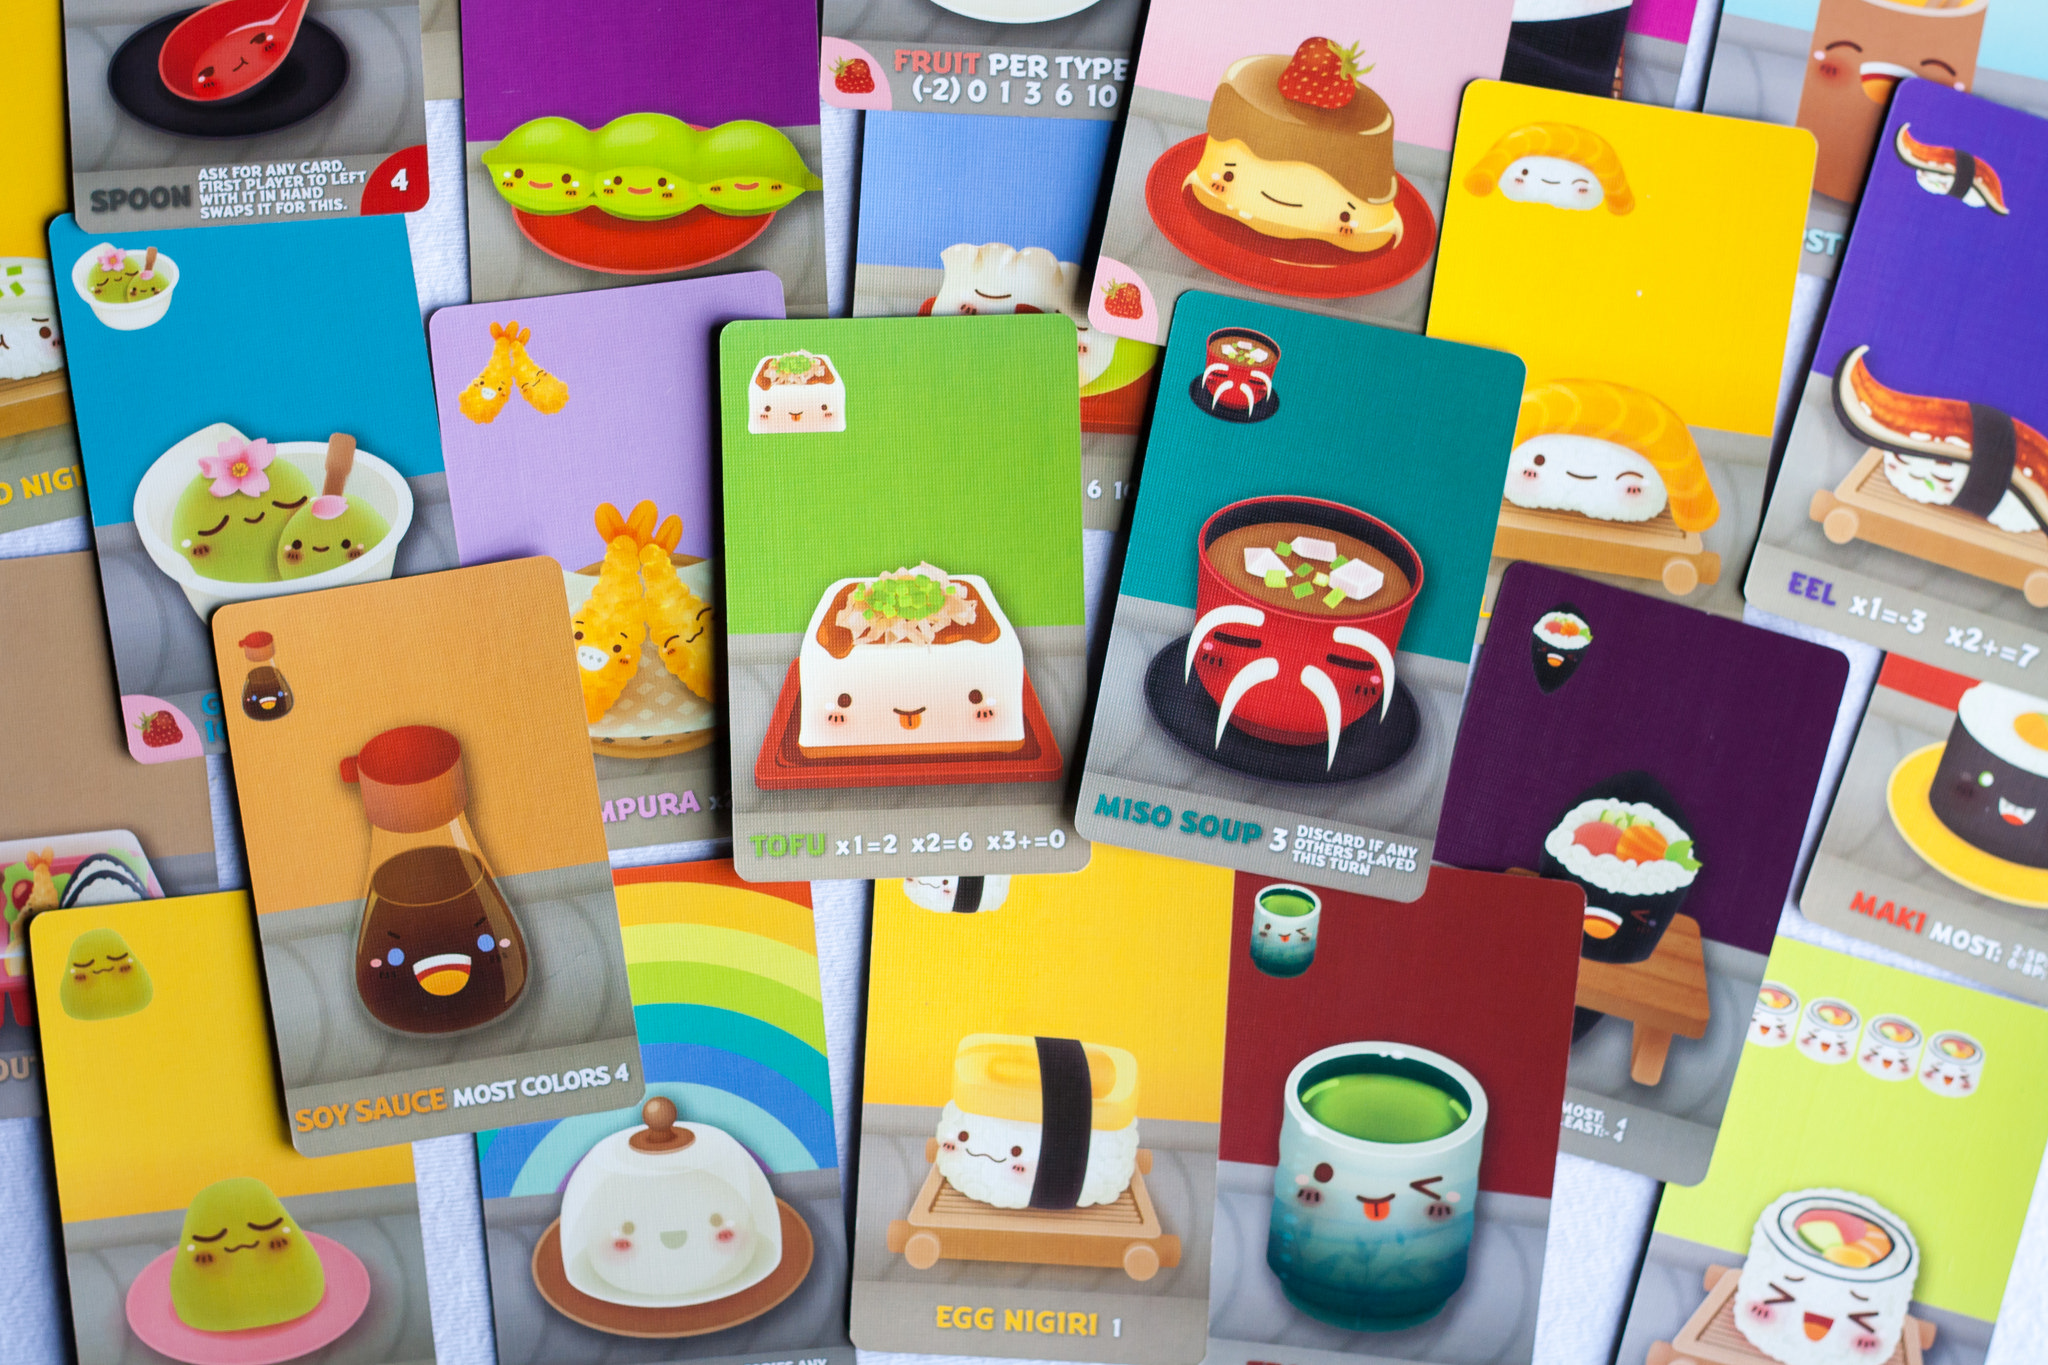 An assortment of game cards from the game Sushi Go Party, featuring anthropomorphised versions of common Japanese foods.